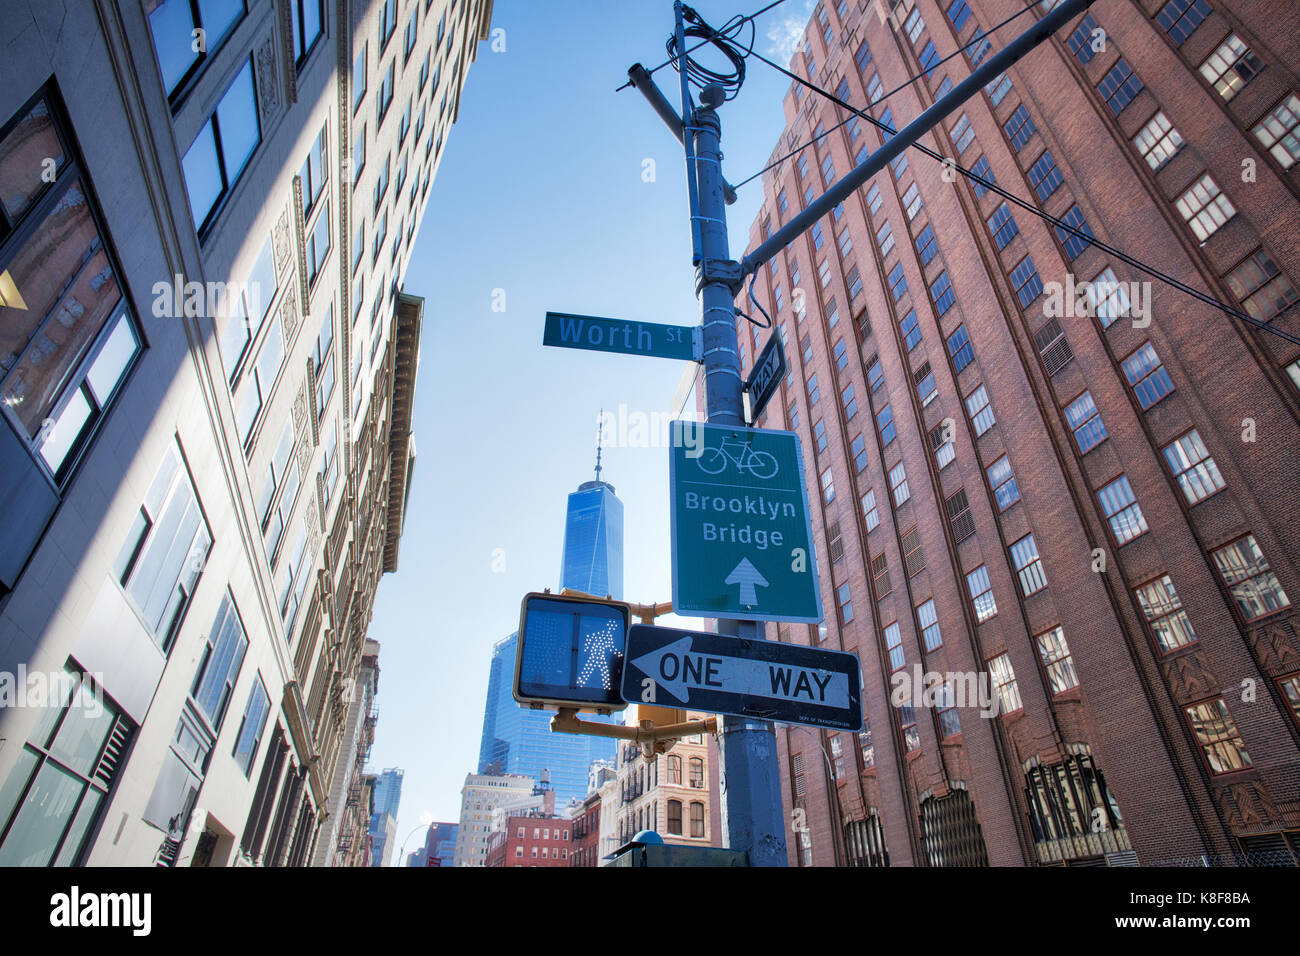 NEW YORK, USA - MARCH 2017 - Brooklyn Bridge cycle sign and Worth sign at tribeca. Stock Photo